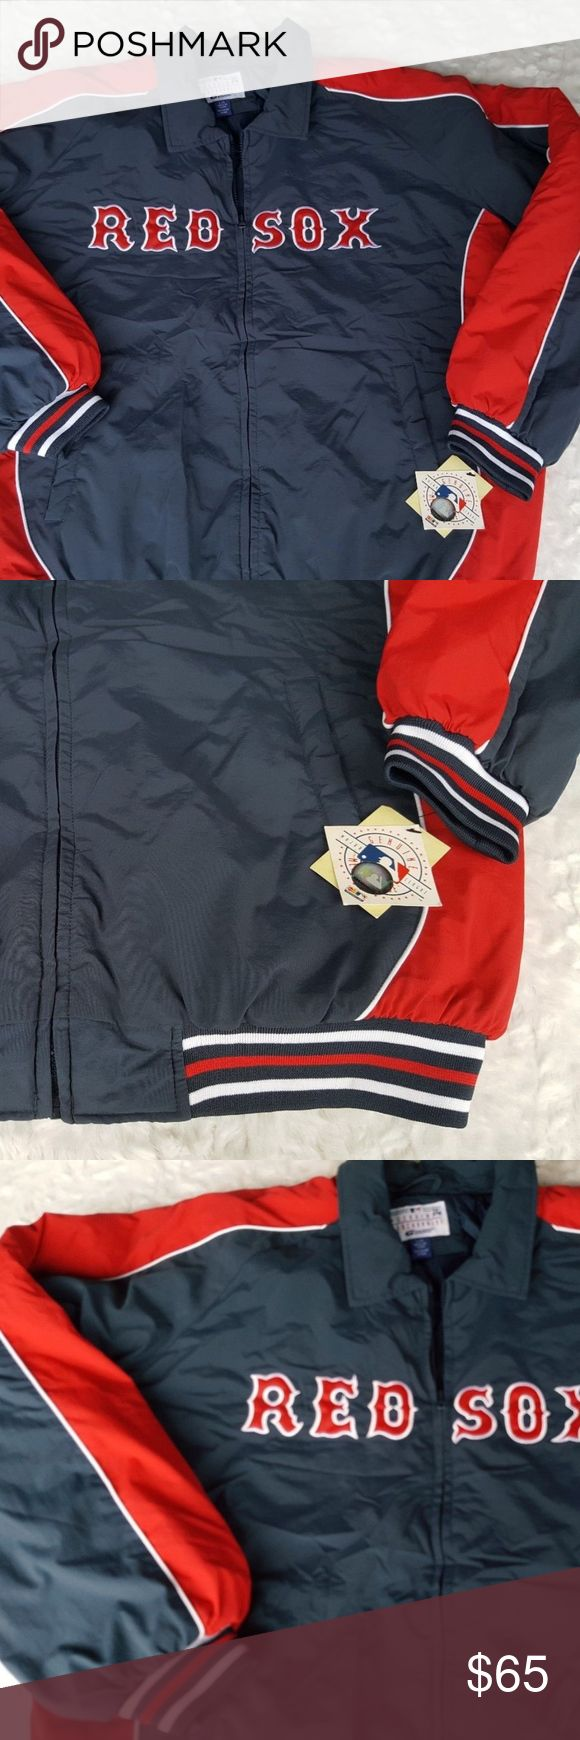 """Mens Boston Red Sox Baseball Jacket (L) RED SOX Winter Jacket Mens Large Genuine Merchandise Boston MLB Baseball Blue  Type: Baseball Apparel Style: Winter Style Jacket Brand: Genuine Merchandise Material: Unknown Color: Blue, Red, White Measurements: Armpit to armpit 26.5"""" flat, Shoulder to hem 29.5"""", Sleeve 34"""" from neck Condition: New, NWT Country of Manufacture: China Genuine Merchandise Jackets & Coats Bomber & Varsity"""